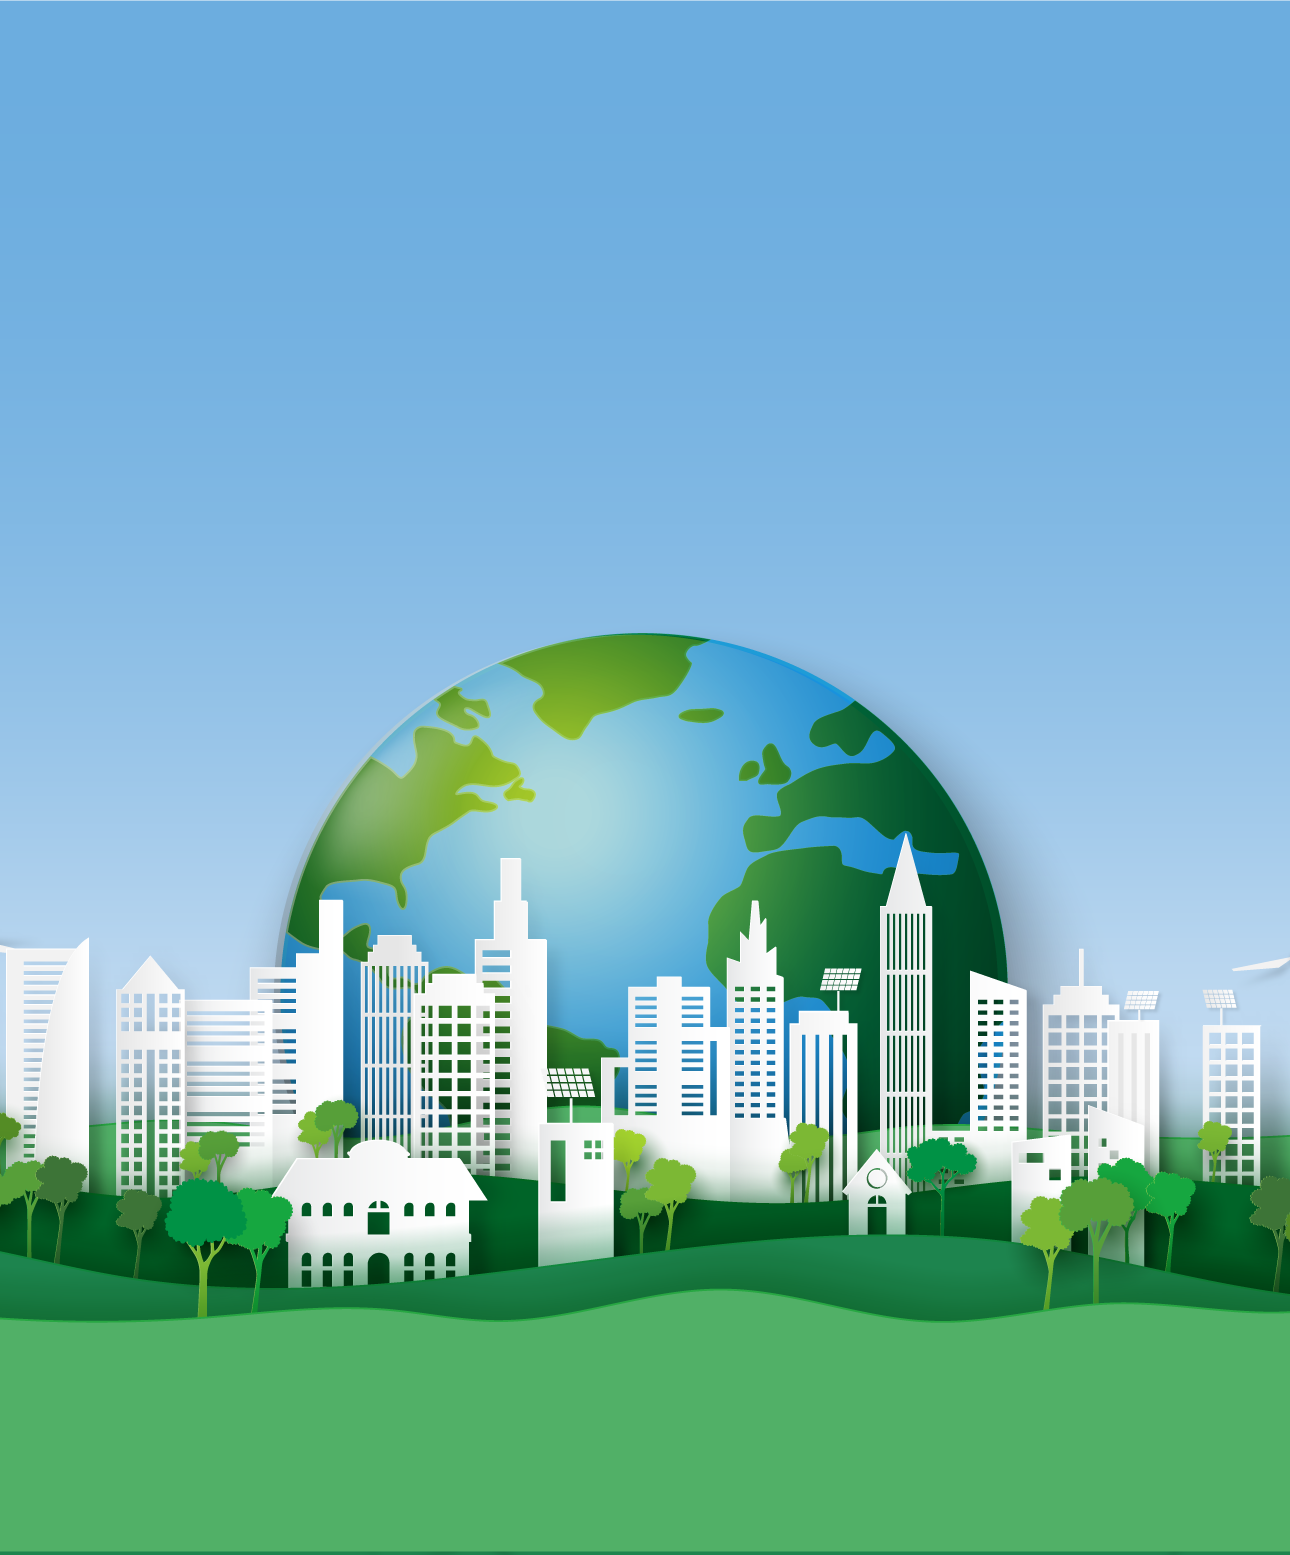 End section background with the earth and city and hills